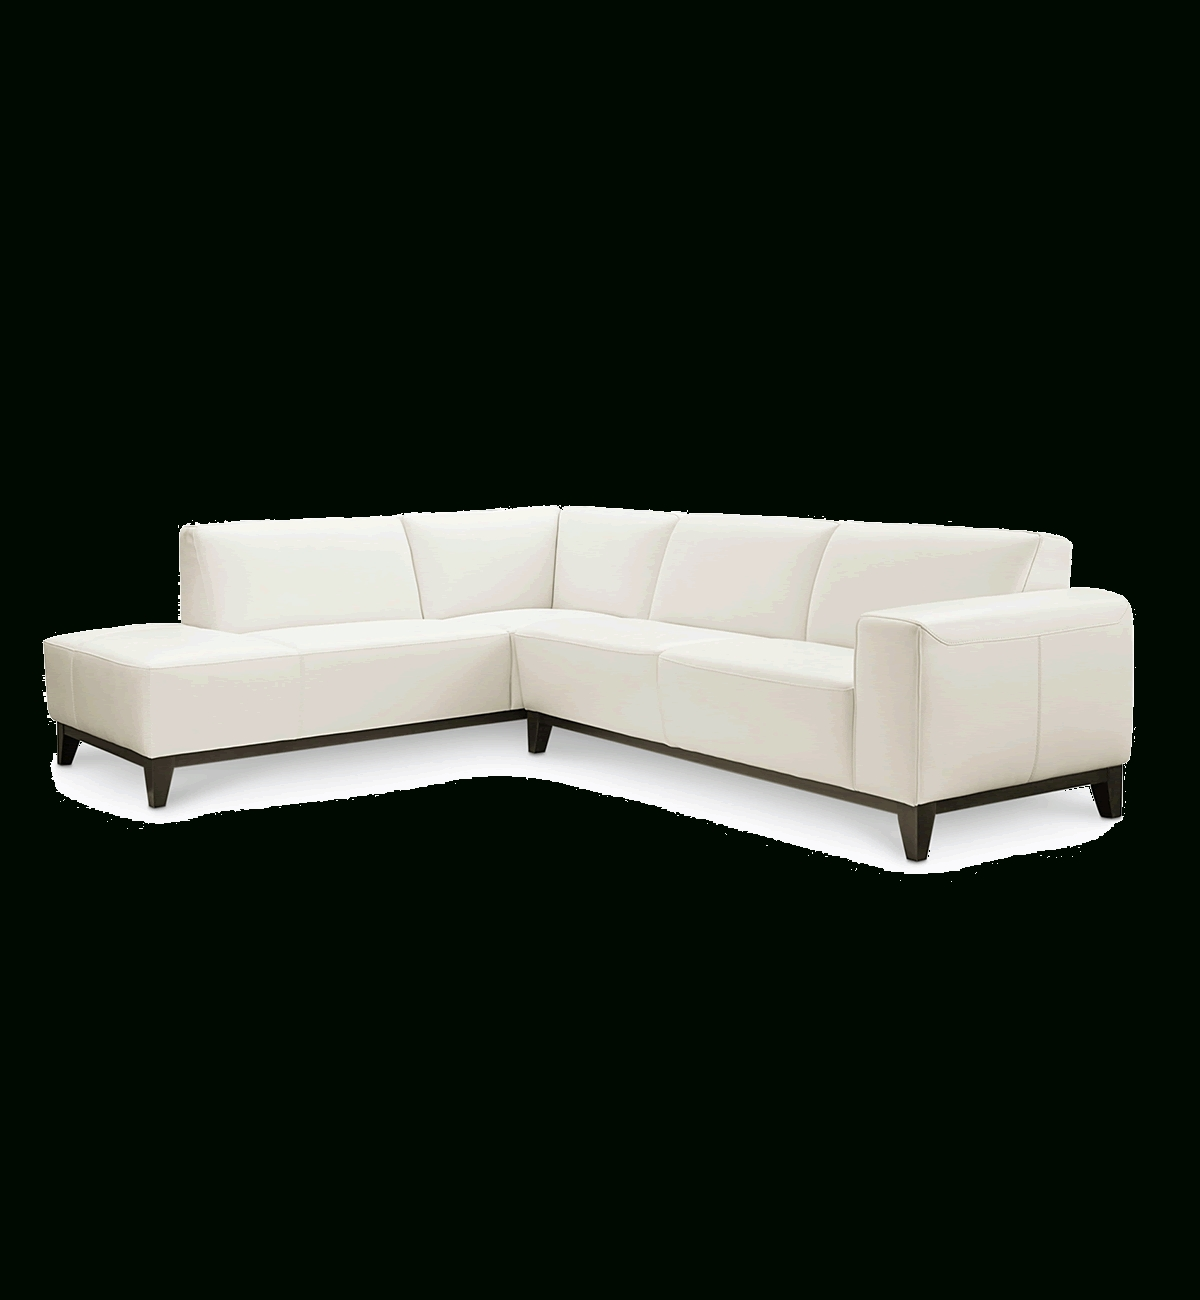 Leather Couches And Sofas – Macy's Regarding Macys Leather Sofas (Image 4 of 10)